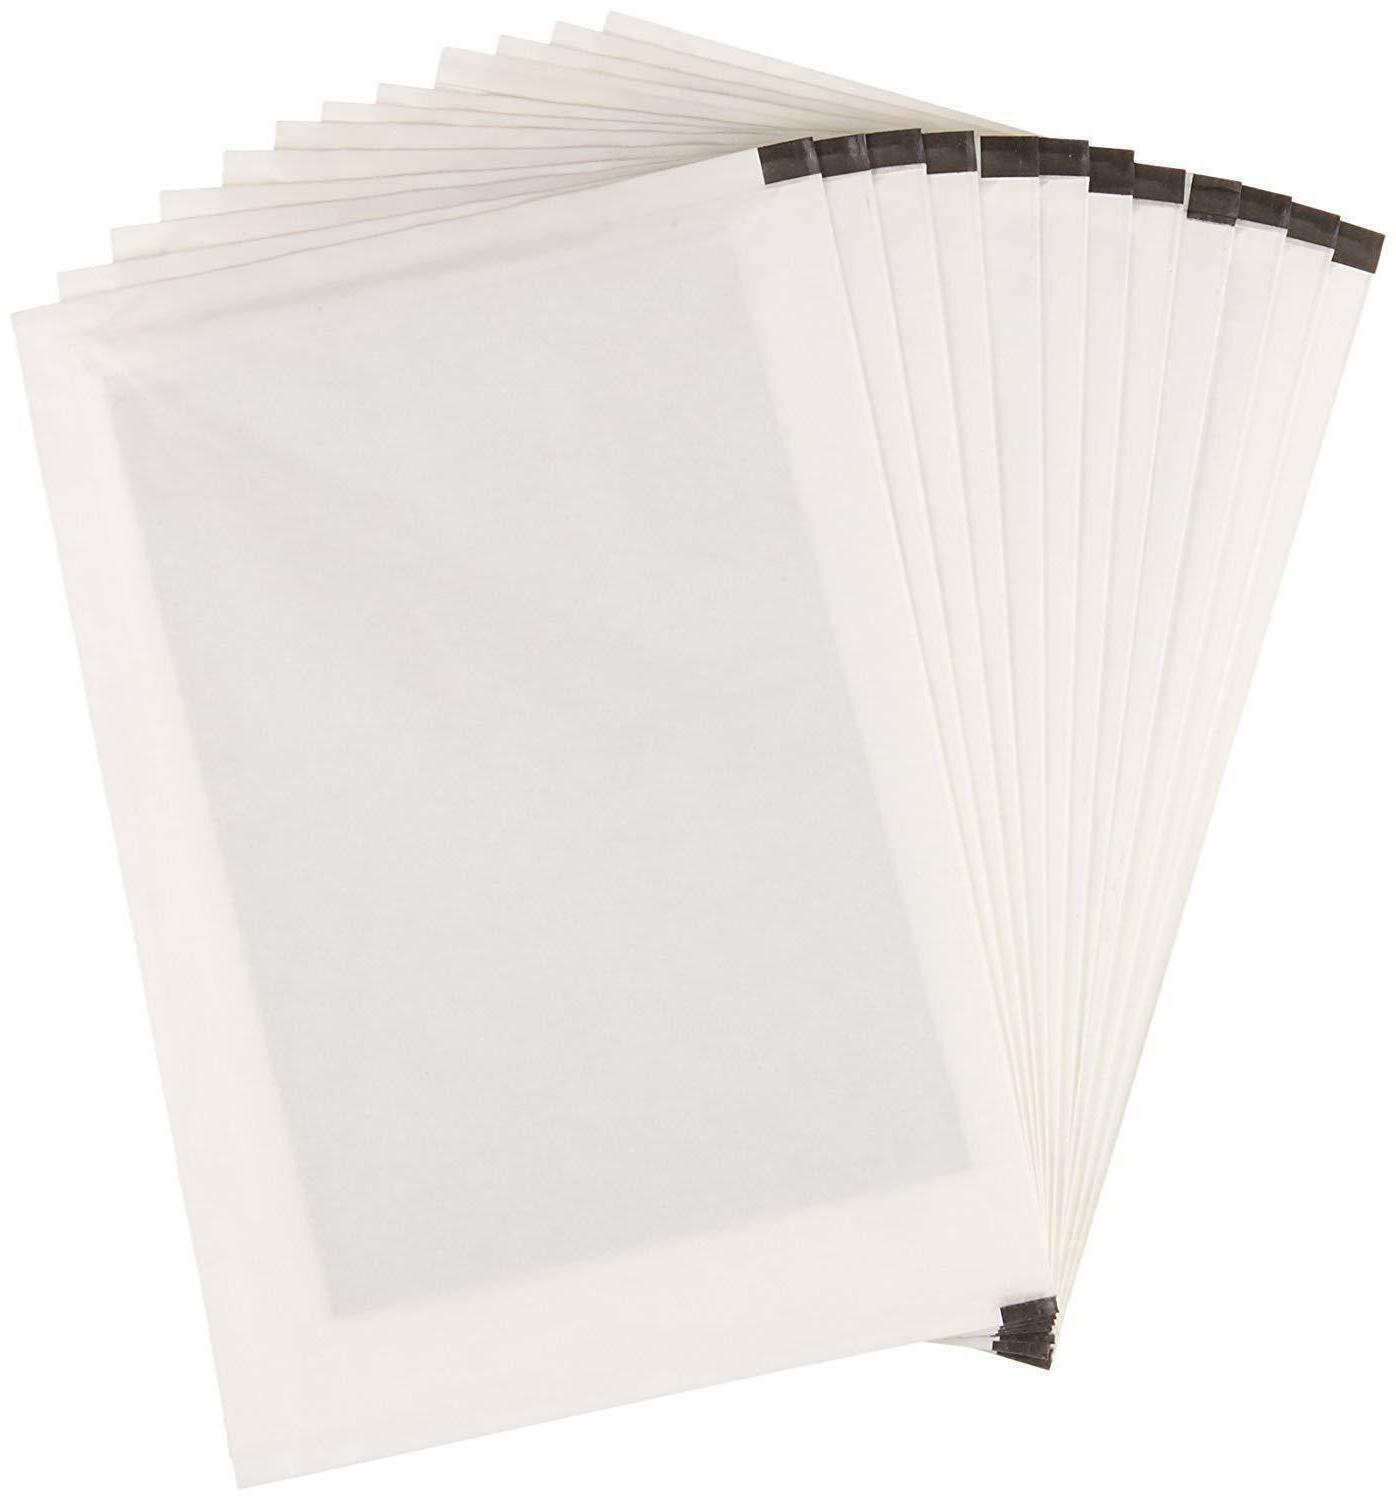 sp12a shredder sharpening and lubricant sheets pack